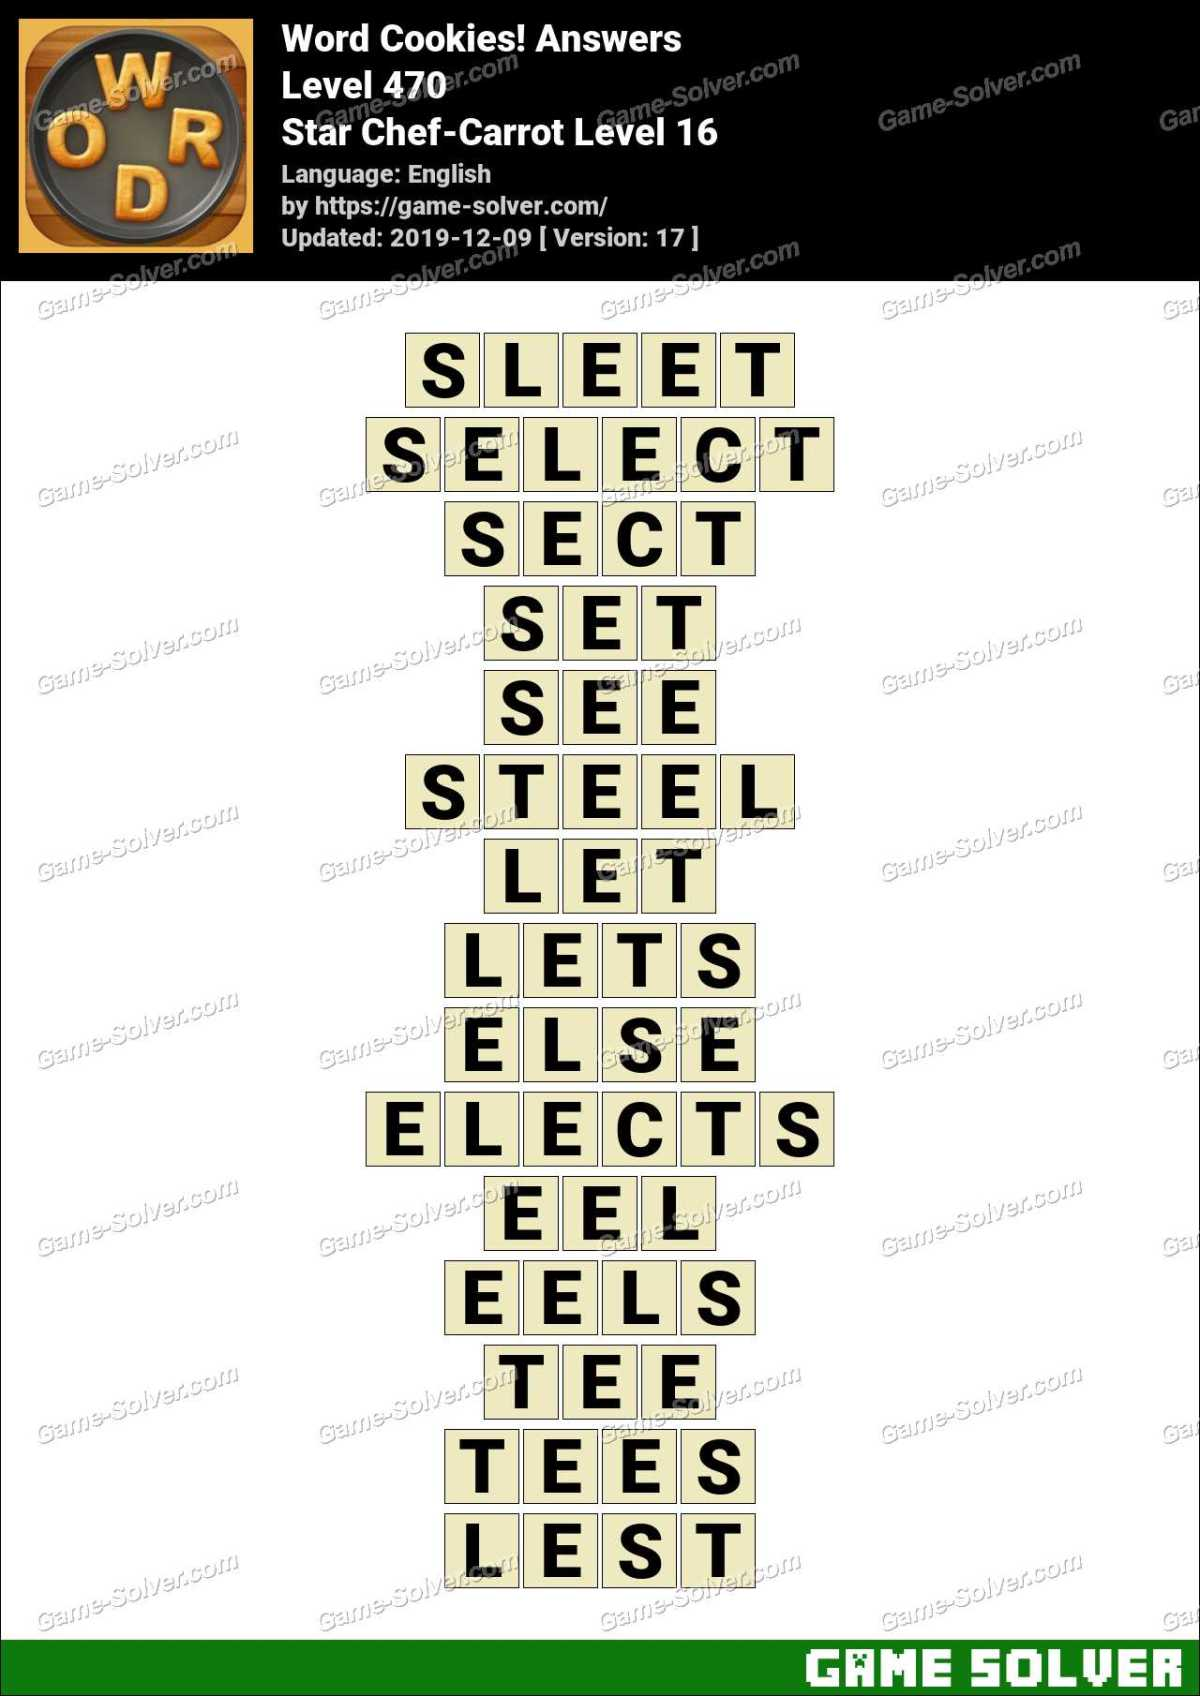 Word Cookies Star Chef-Carrot Level 16 Answers